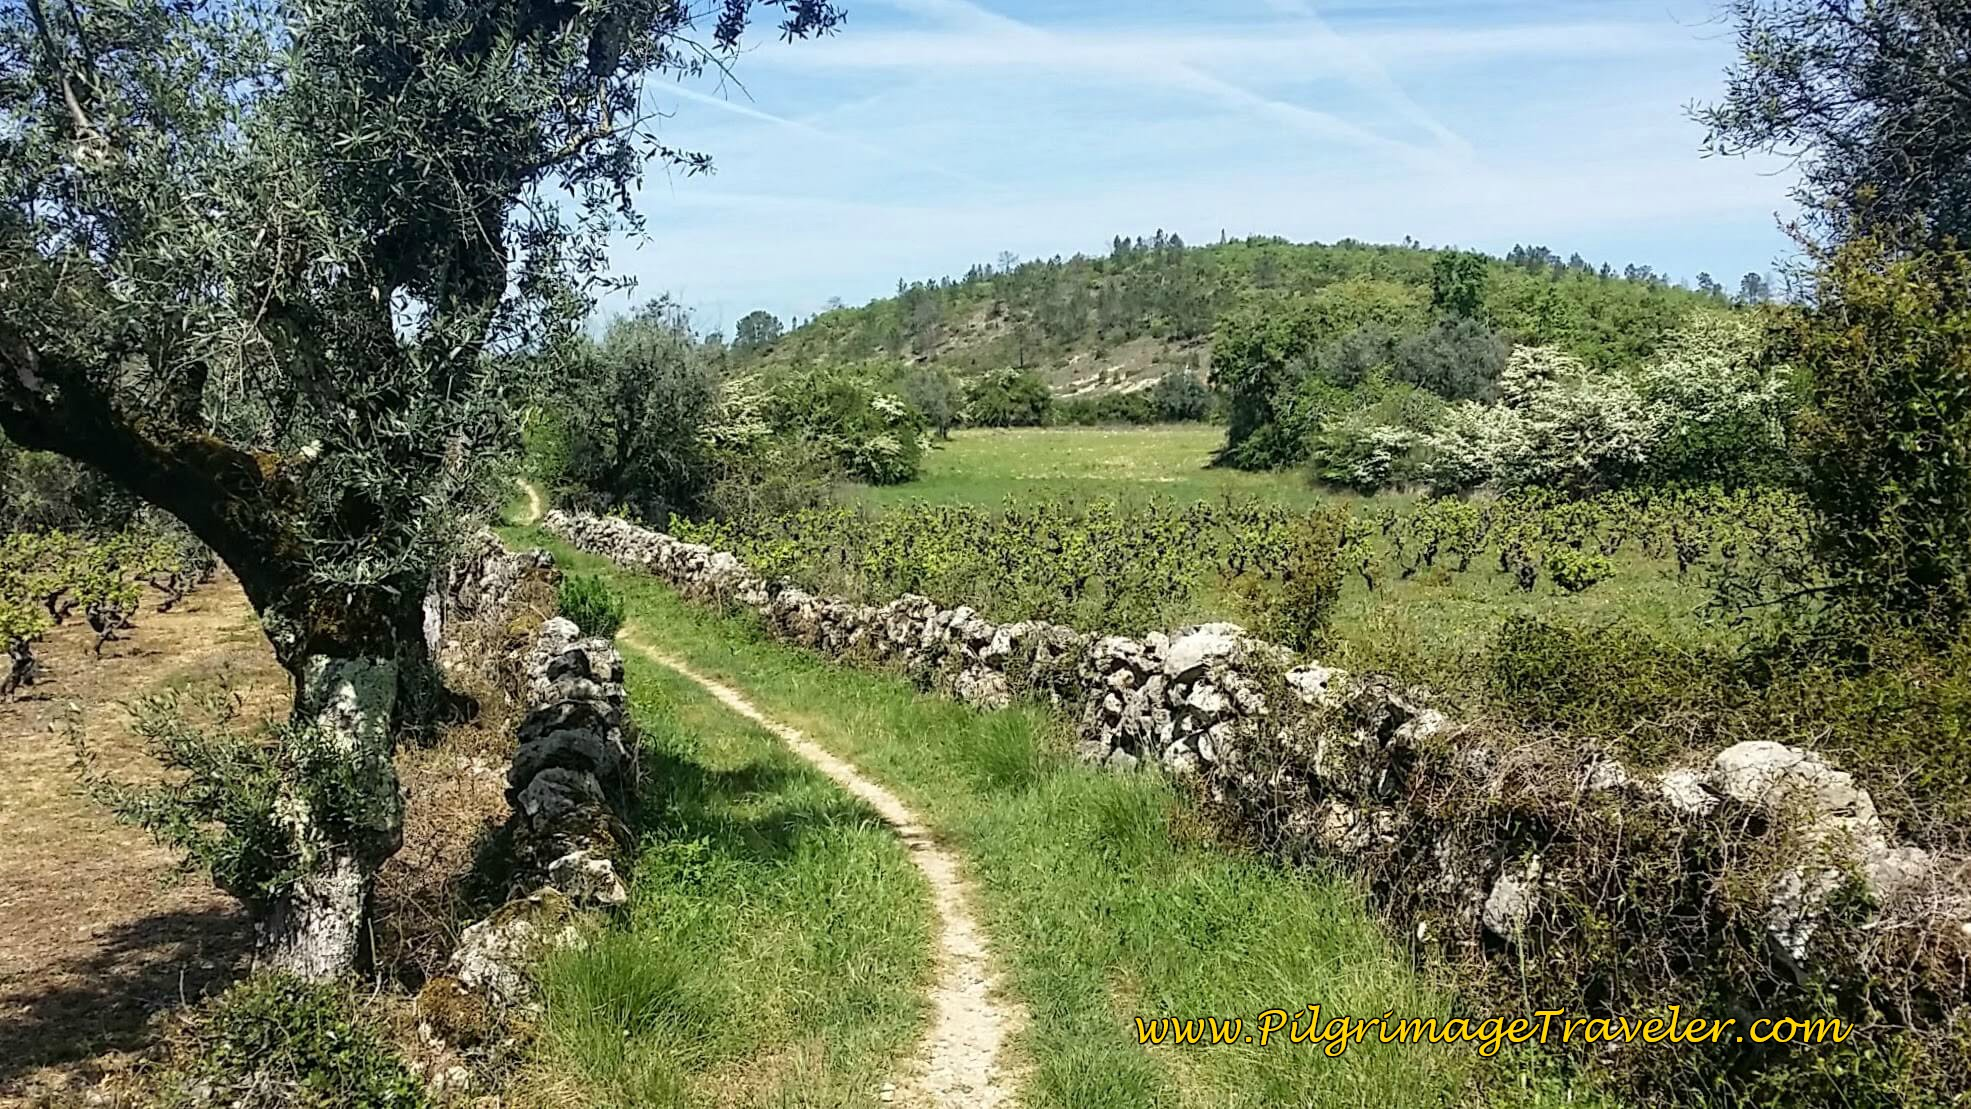 Olive Trees, Vineyards, Stone Walls and Single Track - A Lovely Combination on day seven of the Portuguese Way